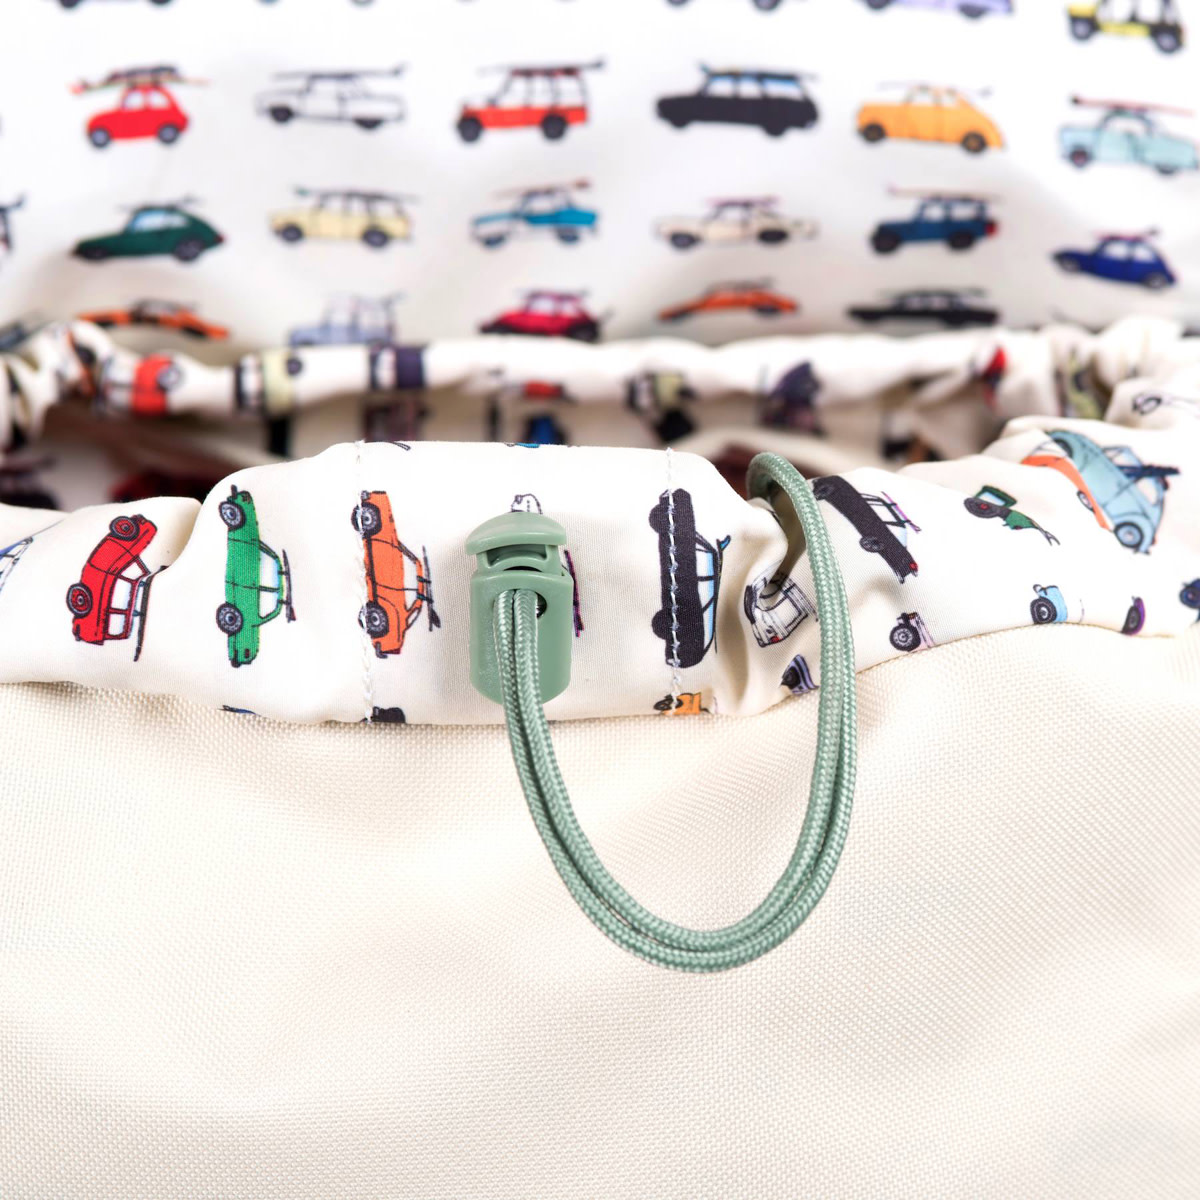 herschel-supply-co-x-kevin-butler-rad-cars-with-rad-surfboards-collection-09